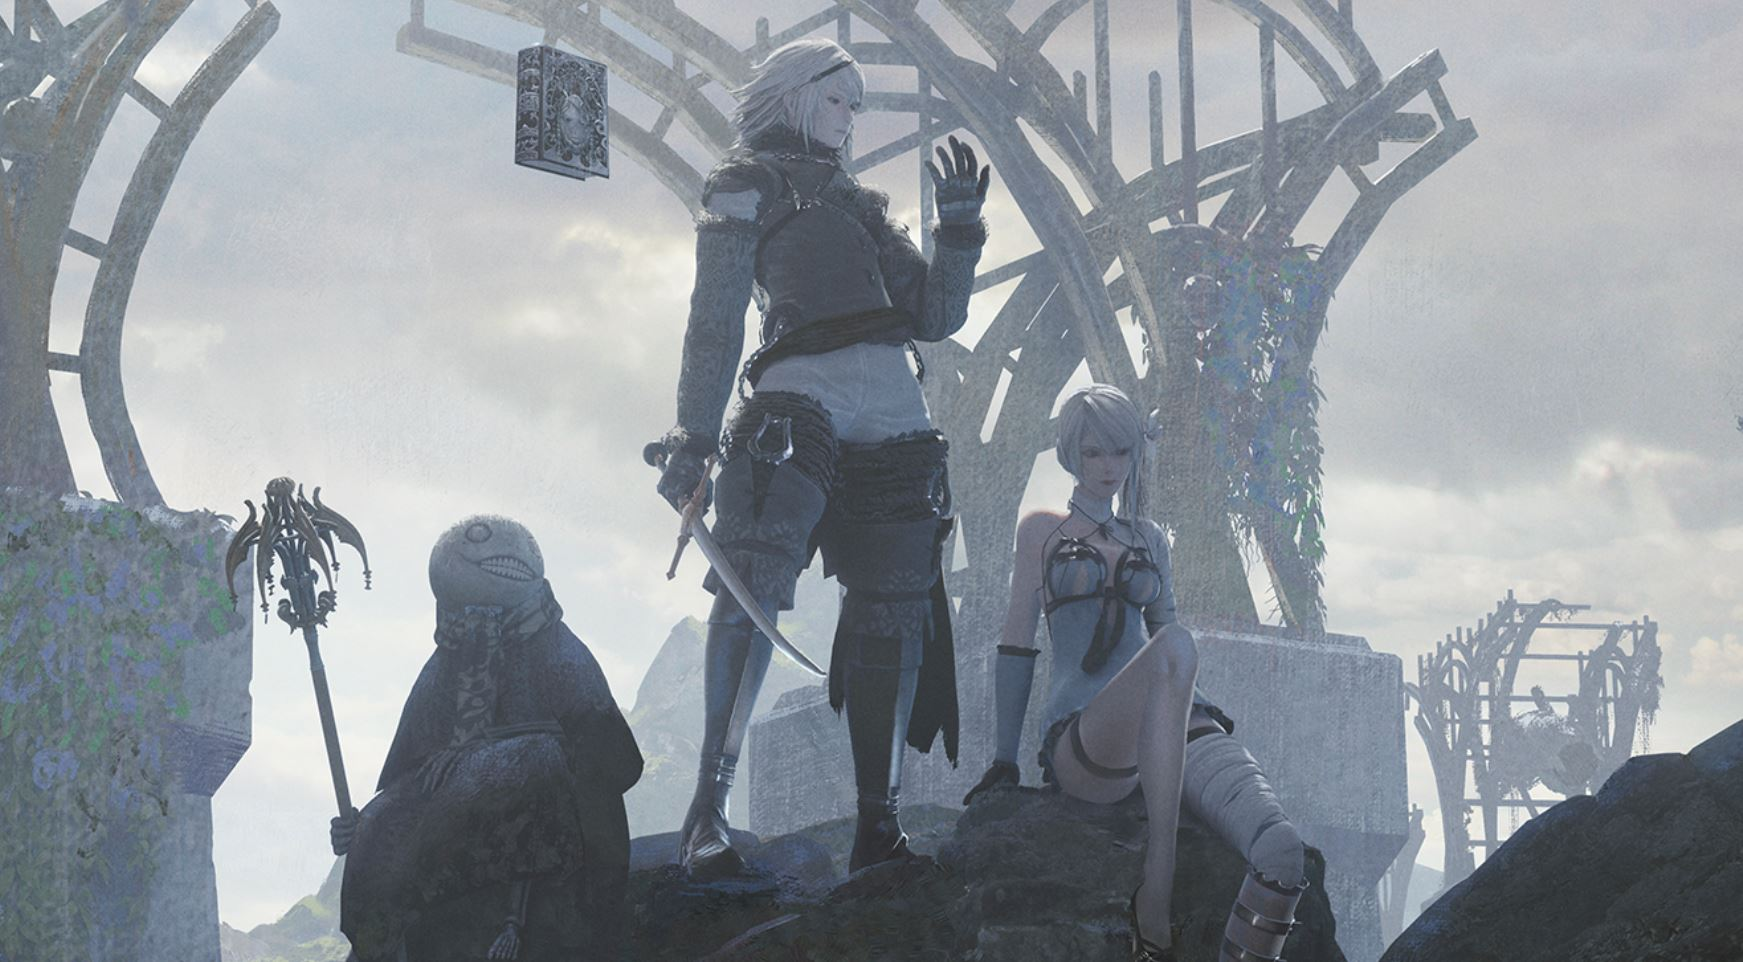 Square Enix shows off some gameplay of Nier: Replicant